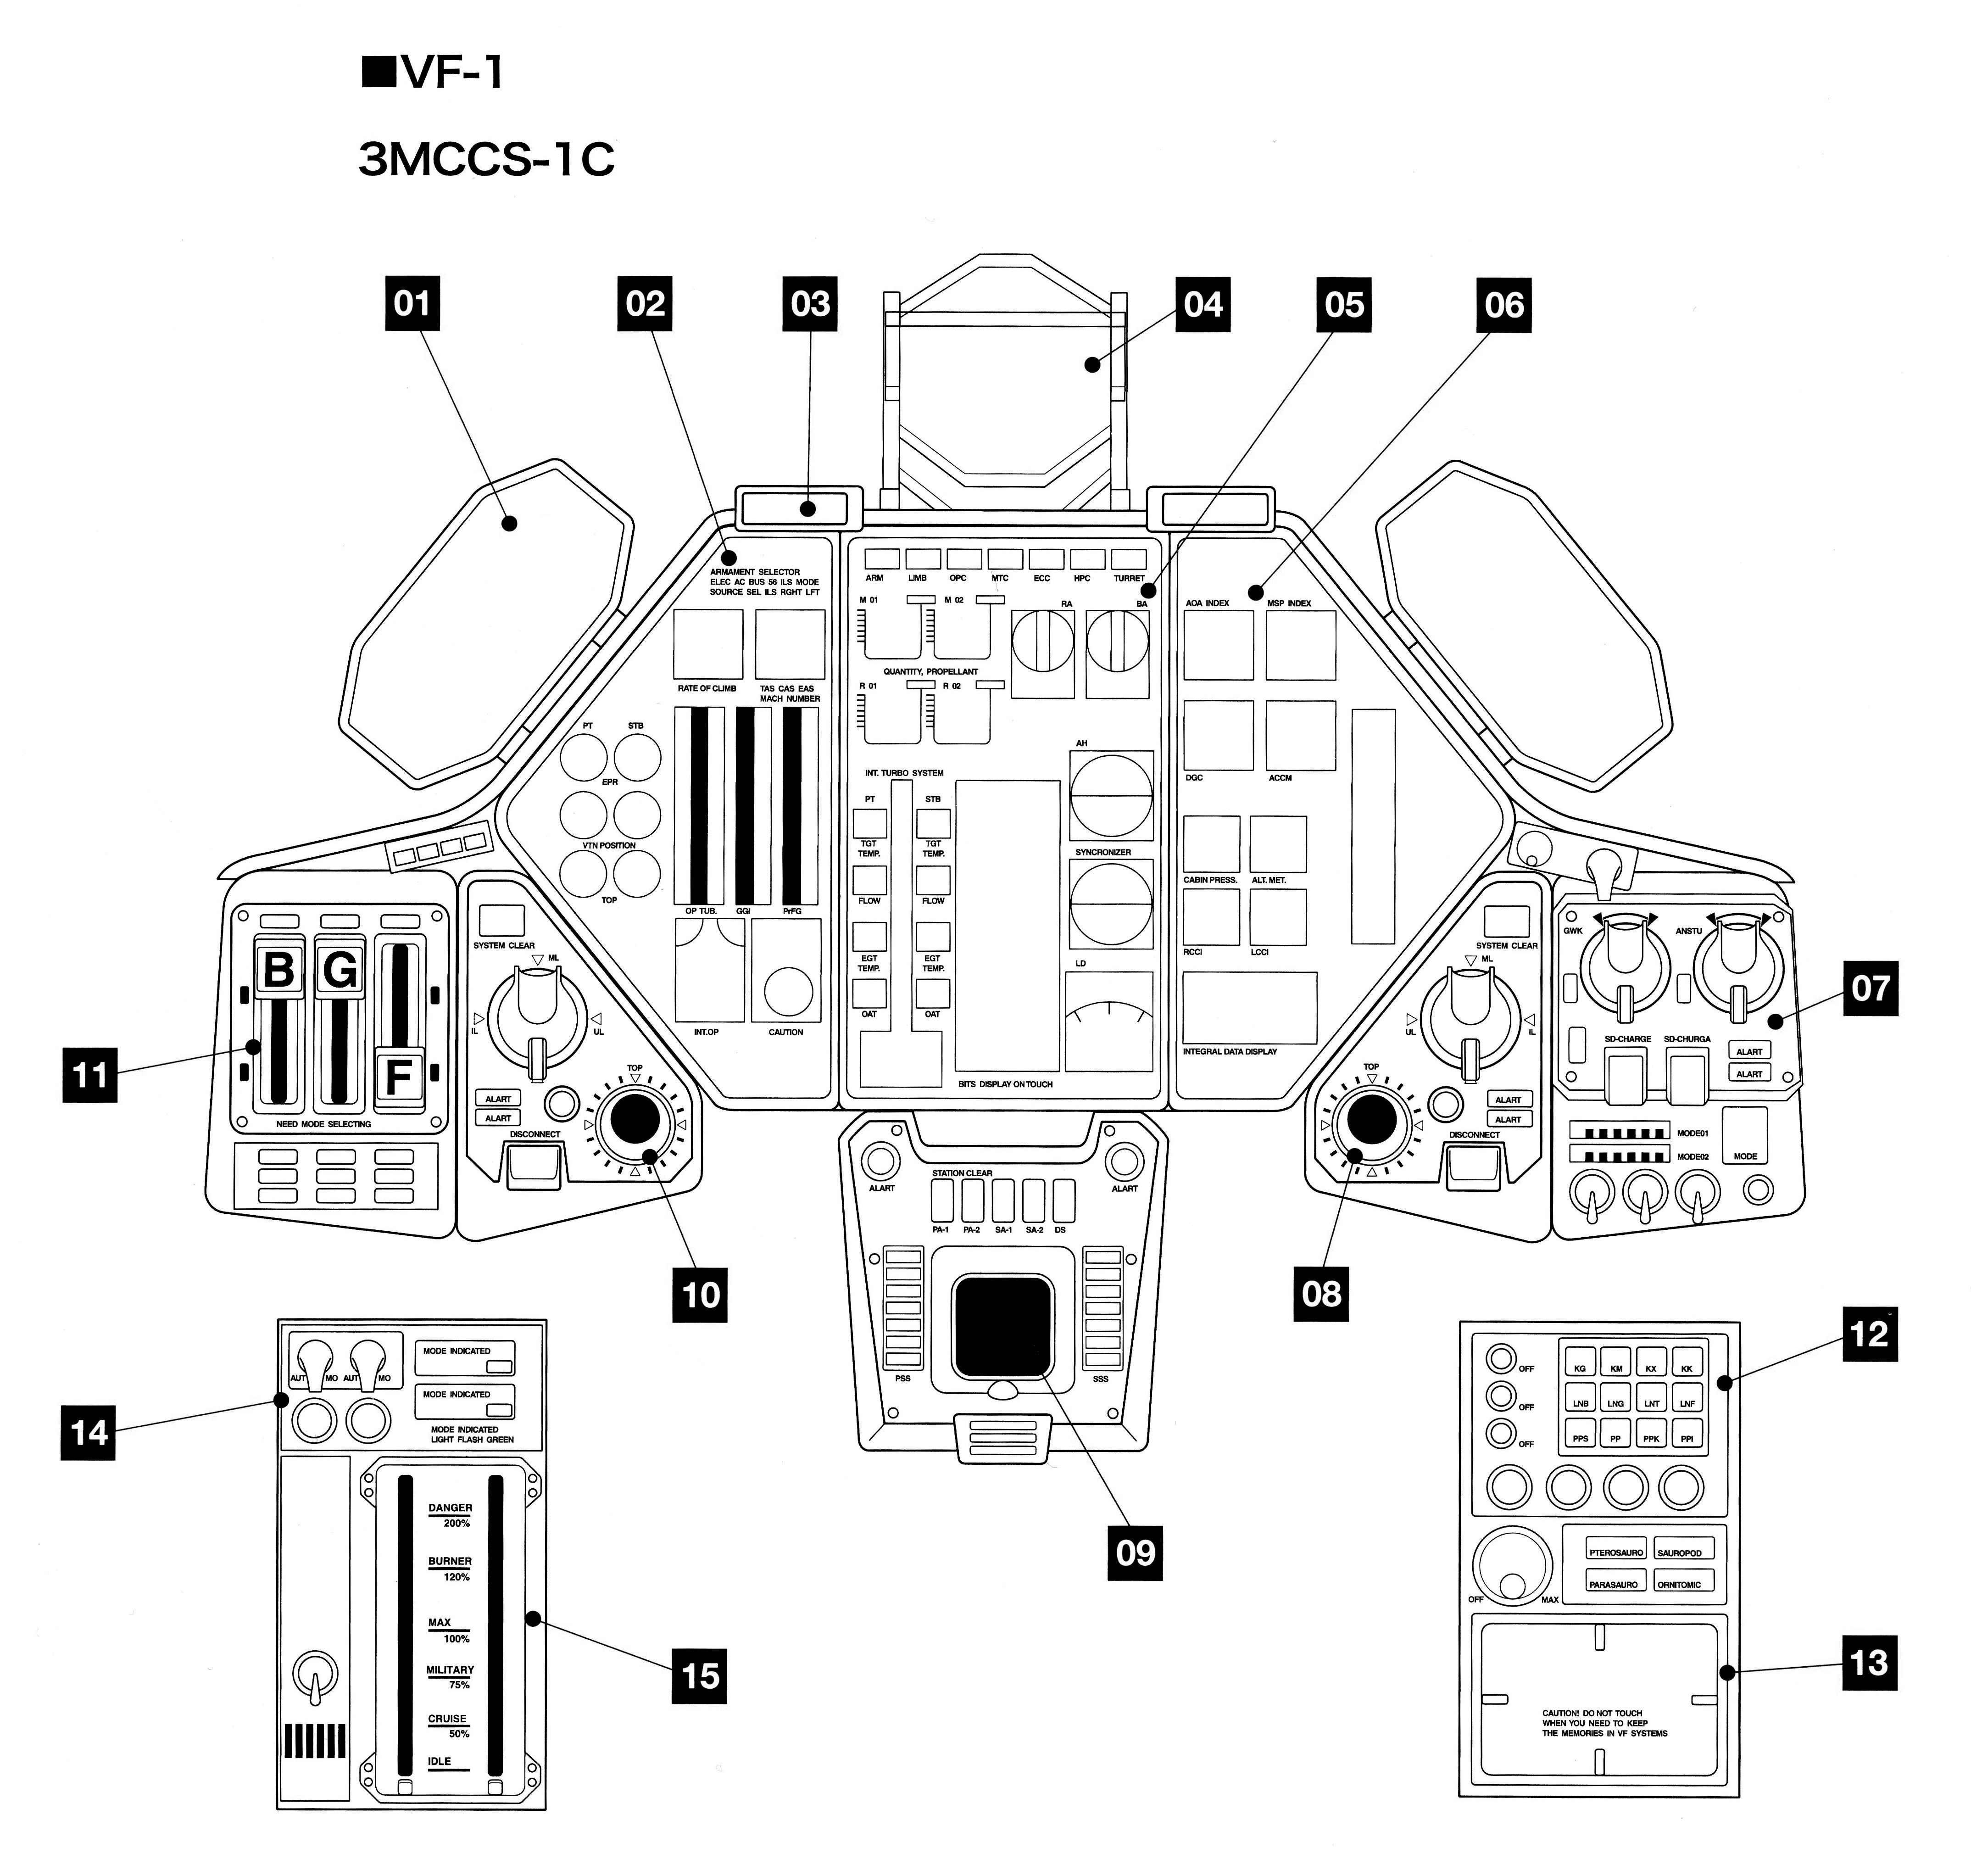 Rockwell Bell VF-1 Valkyrie 3MCCS-1C early cockpit gallery